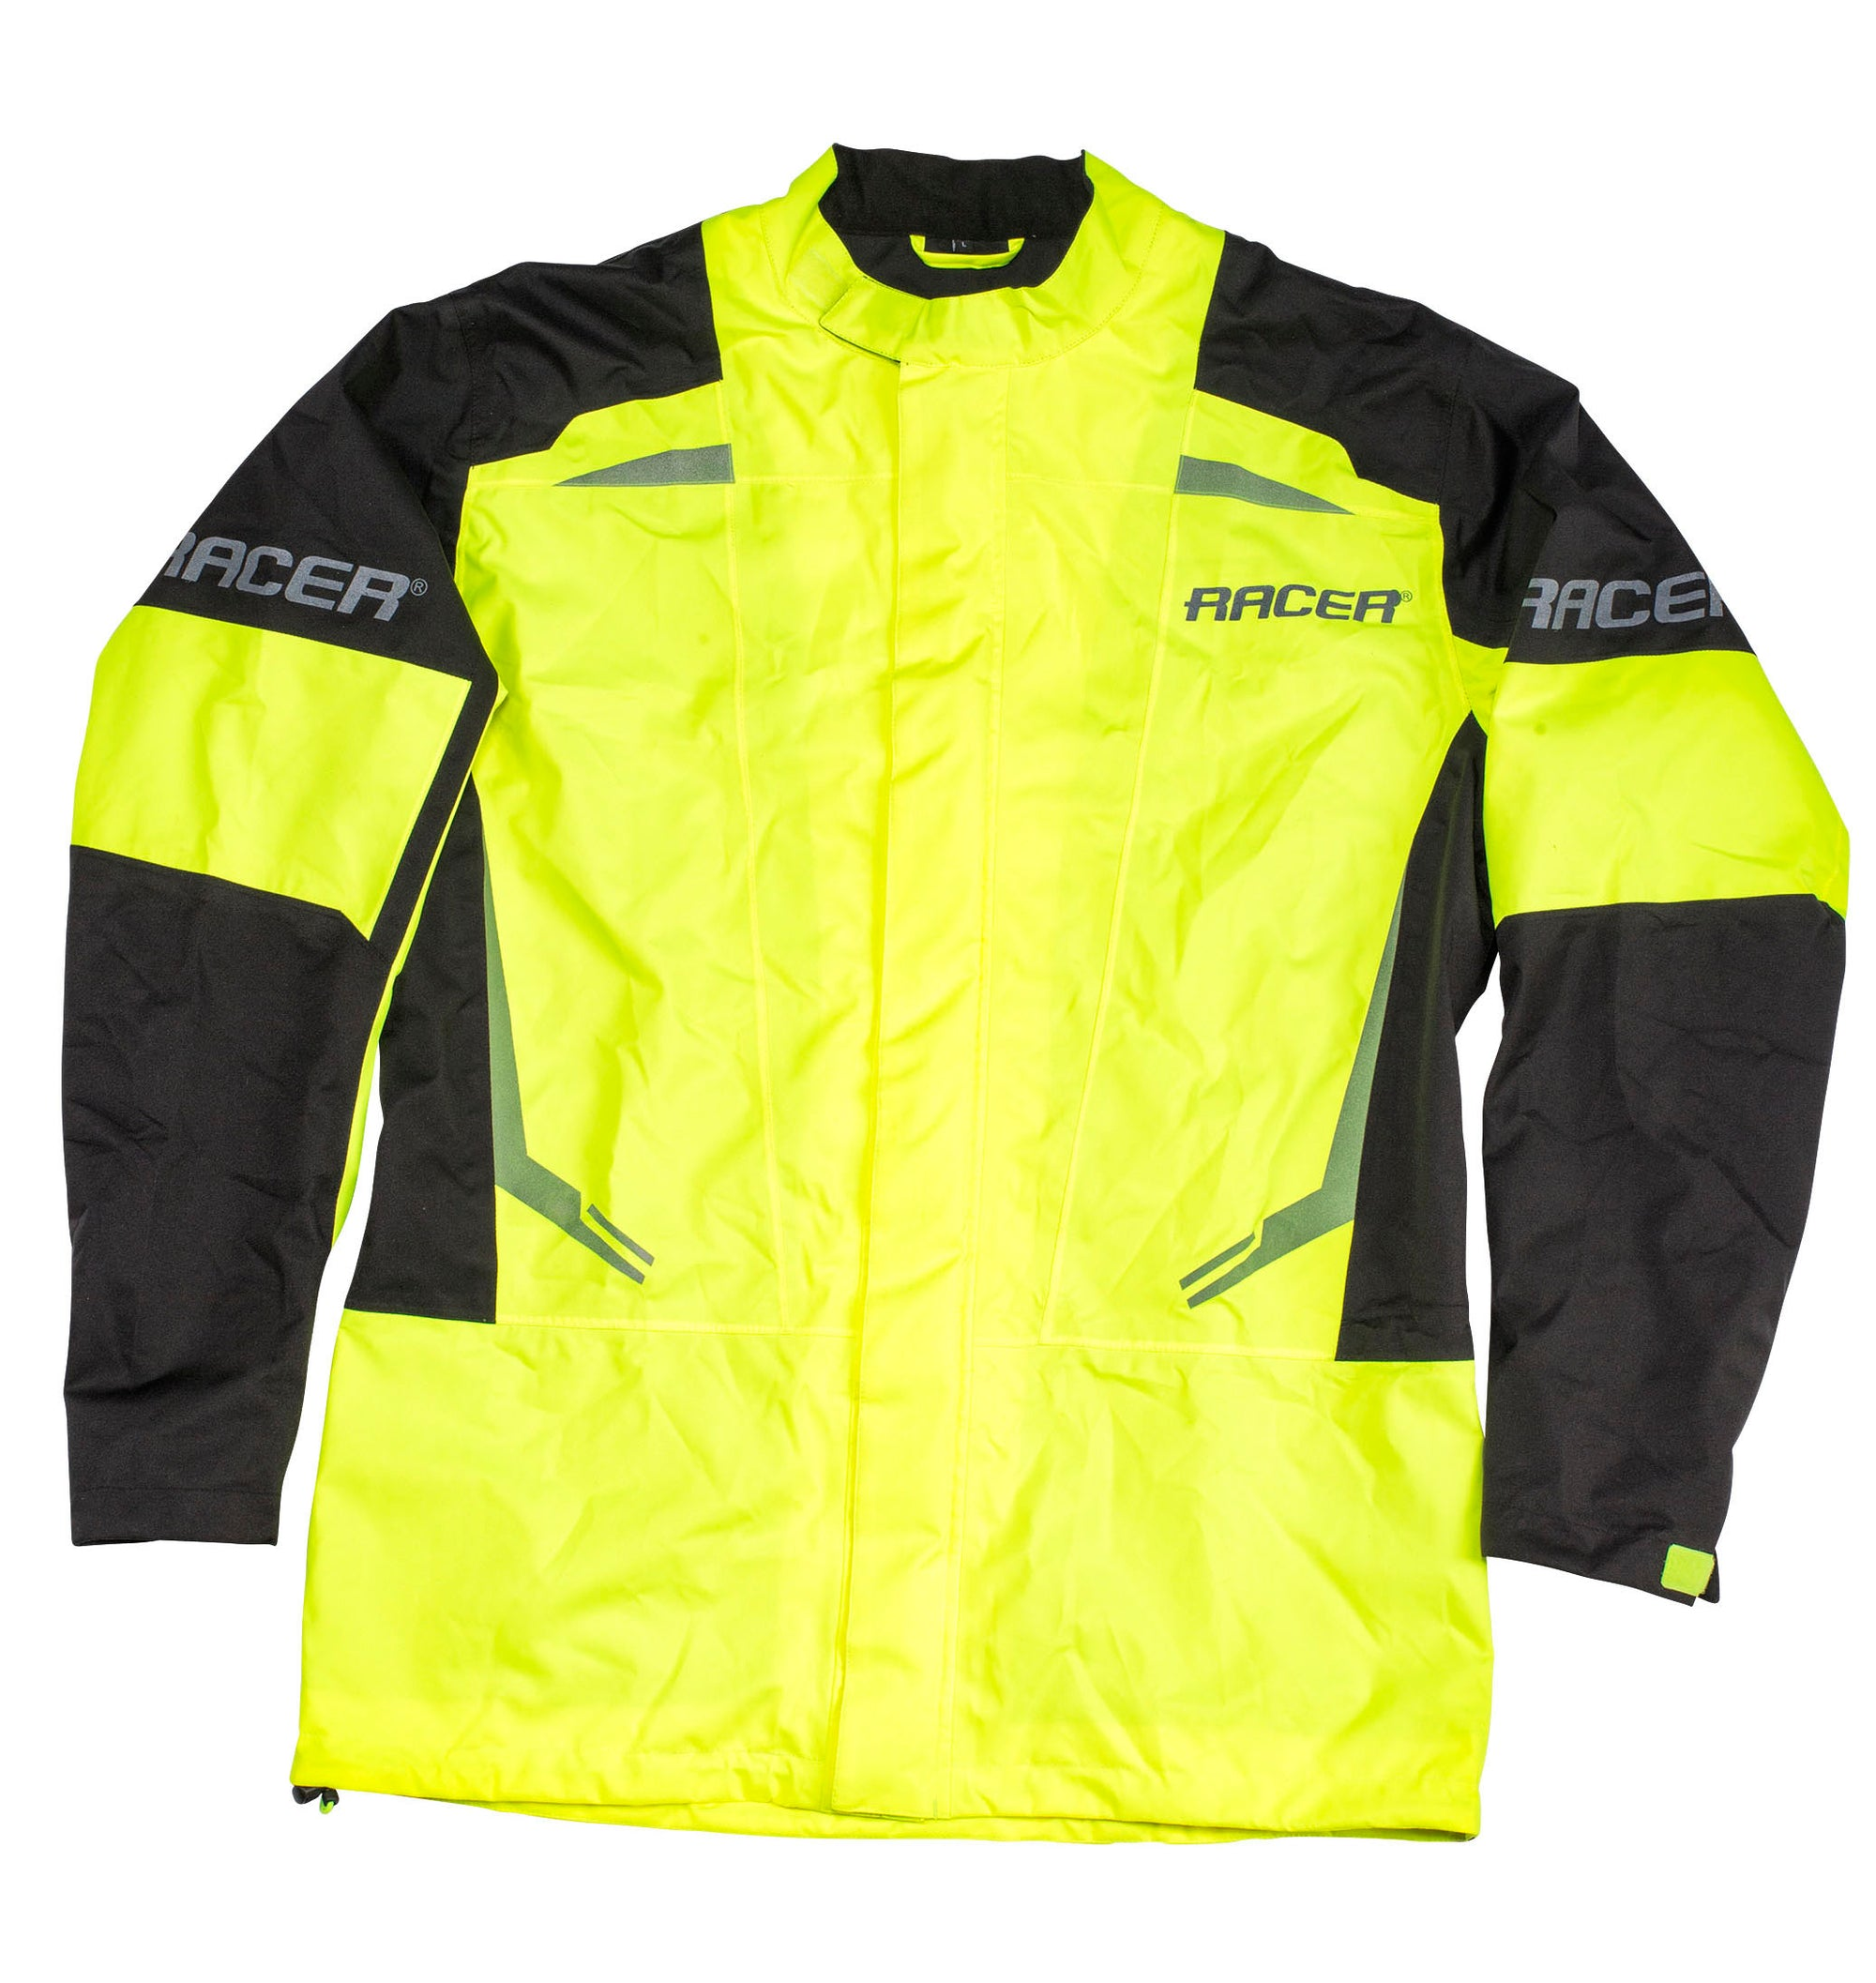 Flex Jacket - Averys Motorcycles